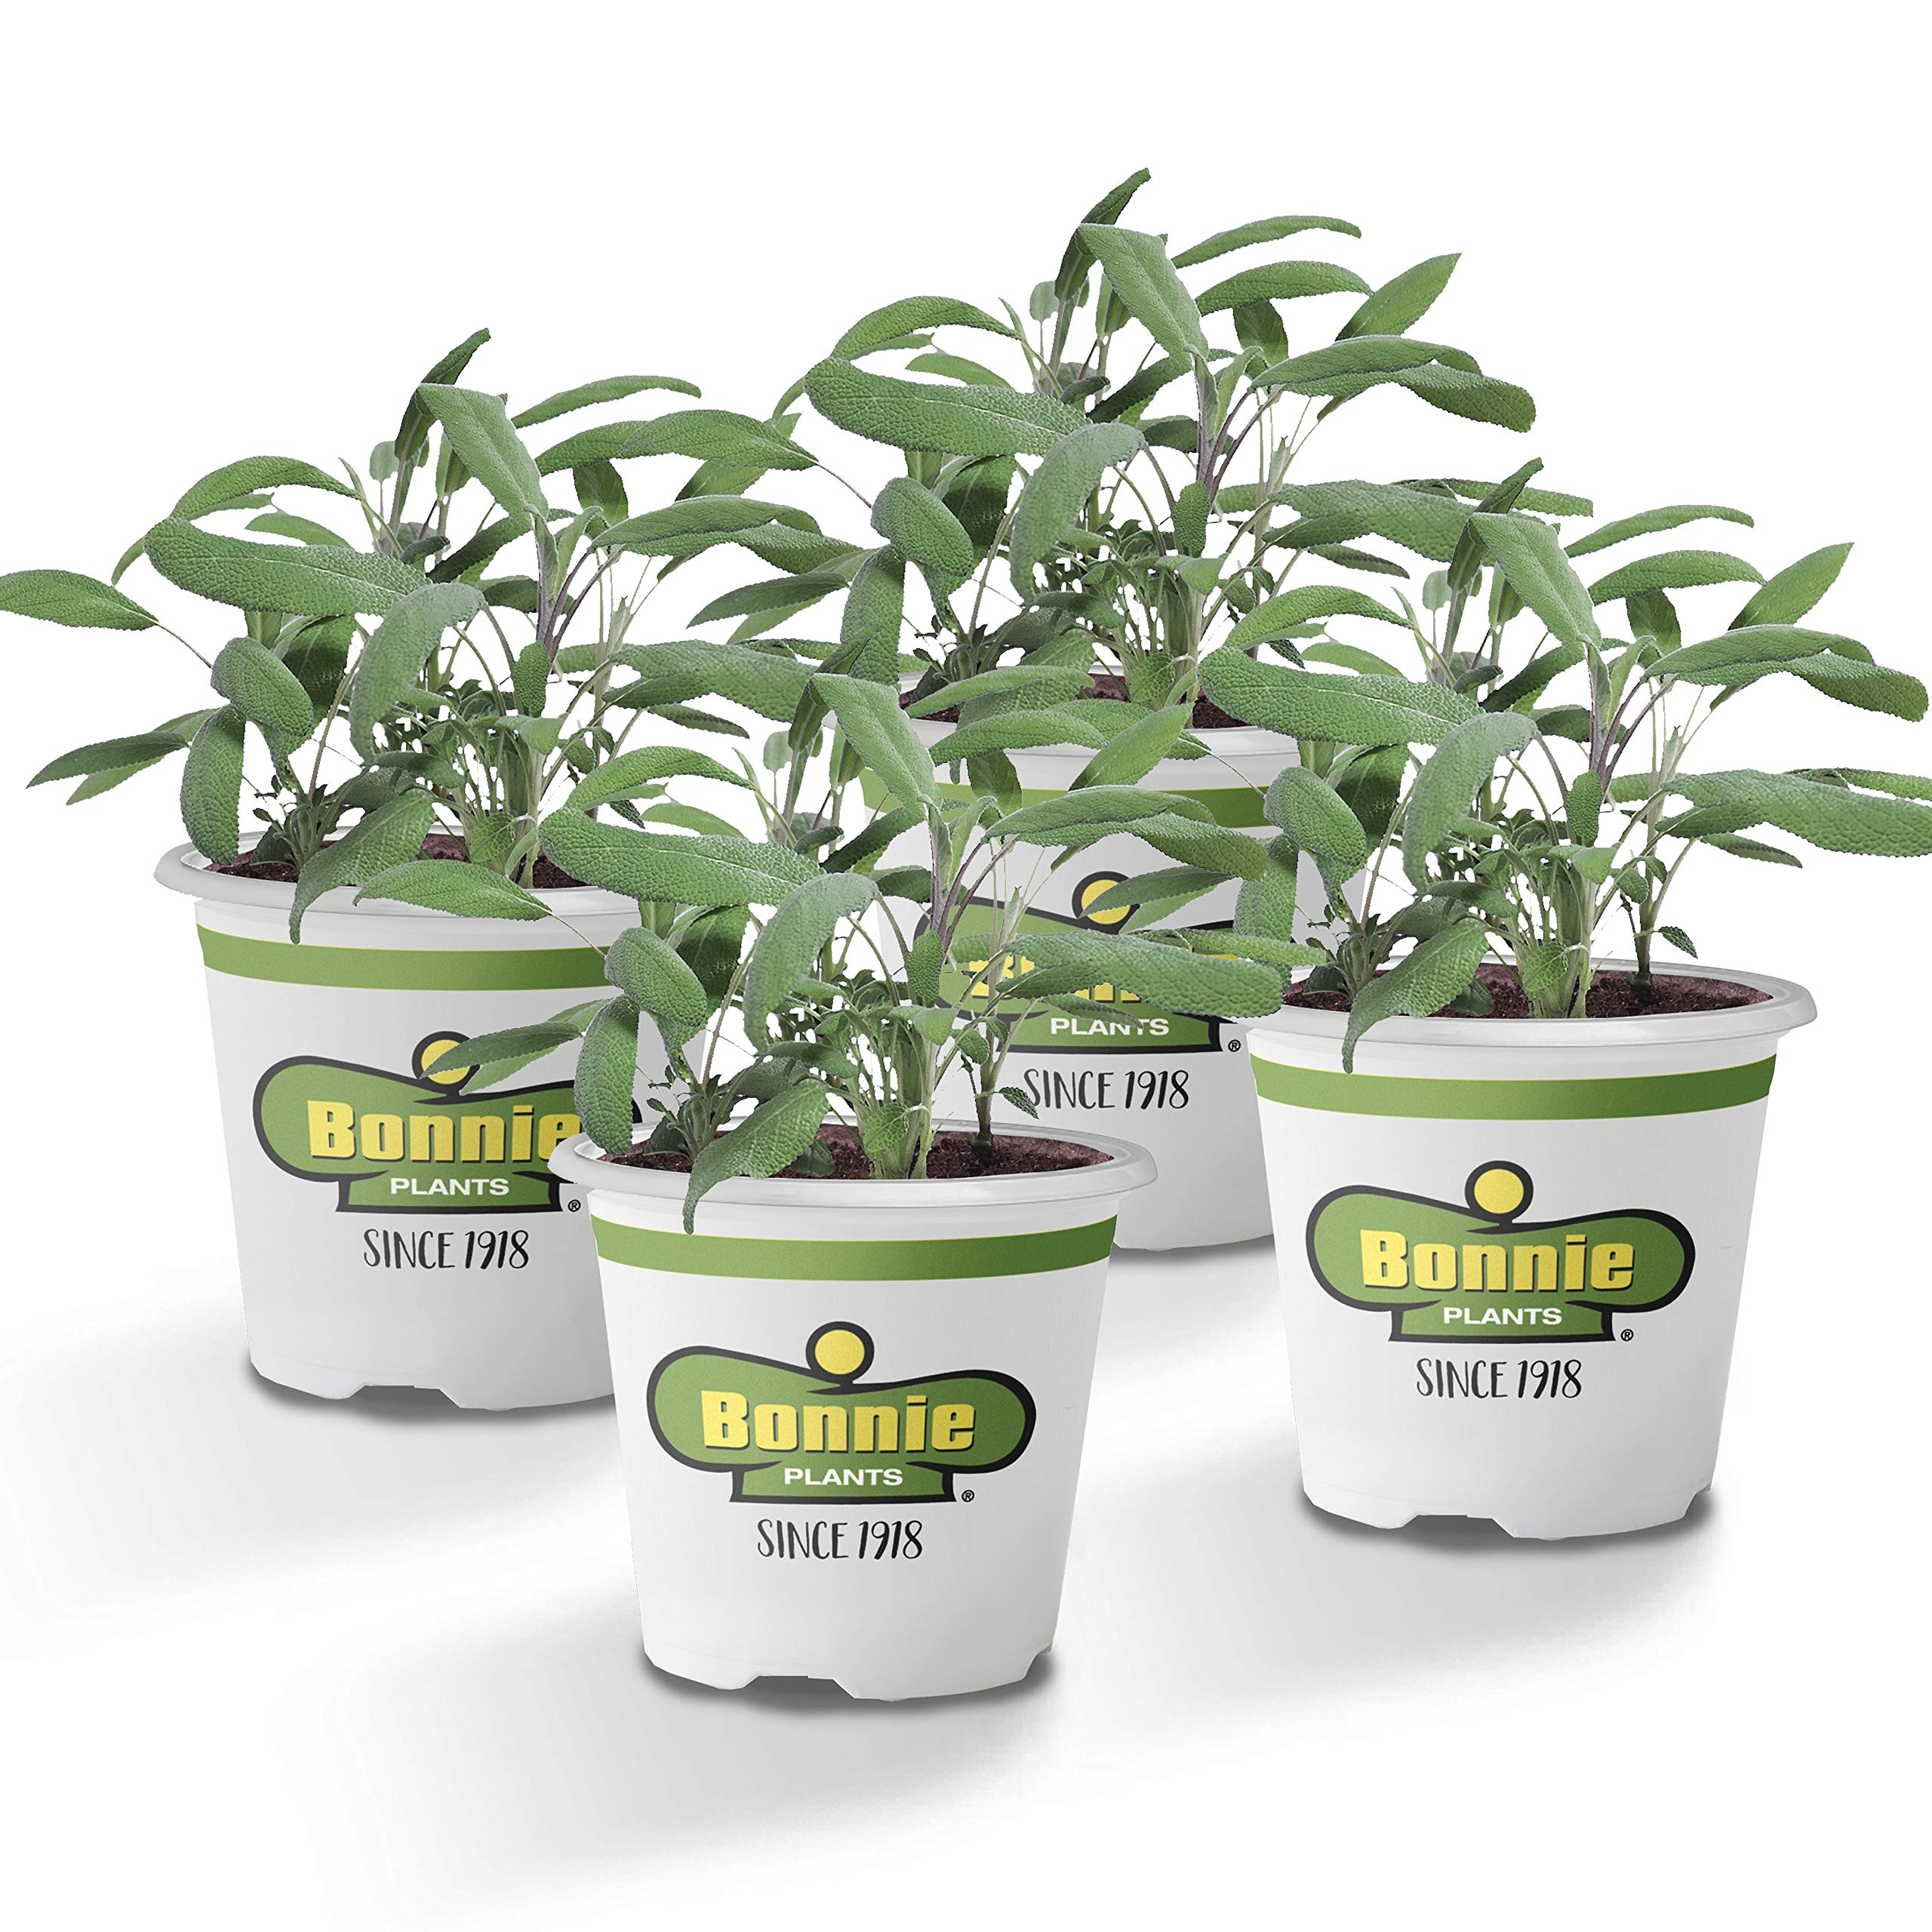 Bonnie Plants Garden Sage Live Herb Plants - 4 Pack, Easy to Grow, Non-Gmo, Perennial in Zones 5 To 8, Key Ingredient of Poultry Seasoning & Turkey Stuffing by Bonnie Plants